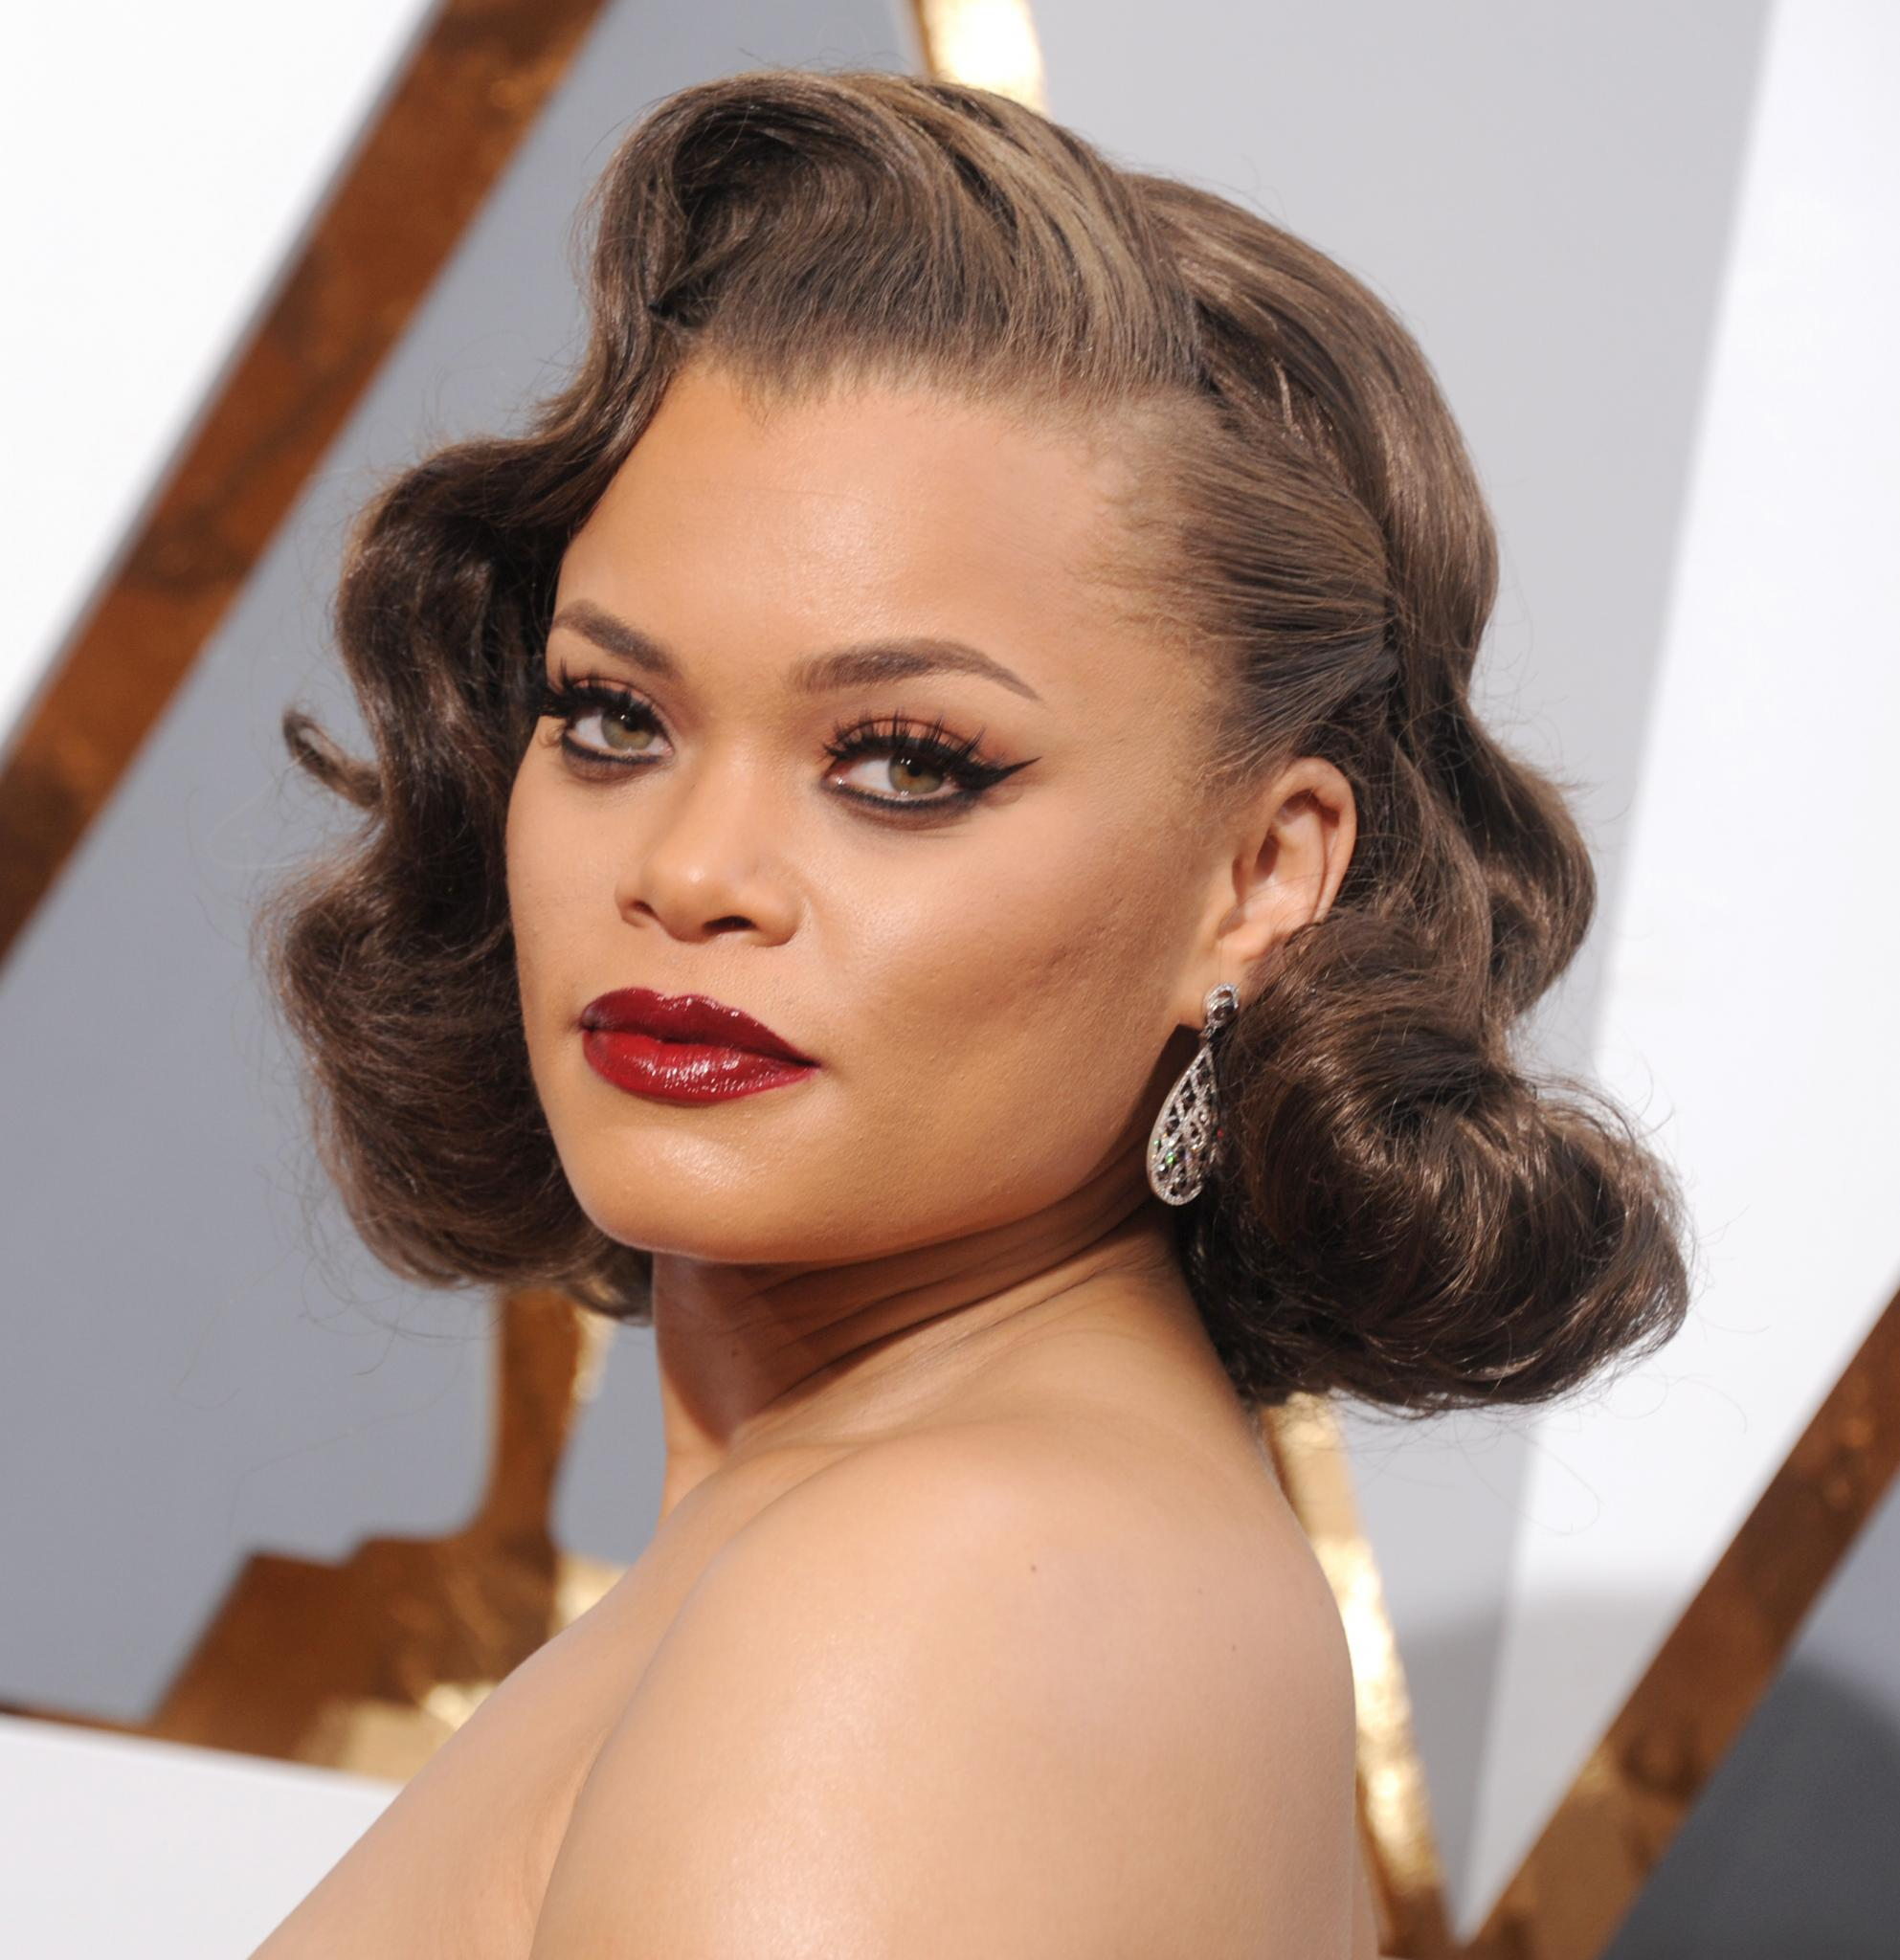 Andra Day: Andra Day Dishes On Her Signature Pompadour, Says 'I Avoid